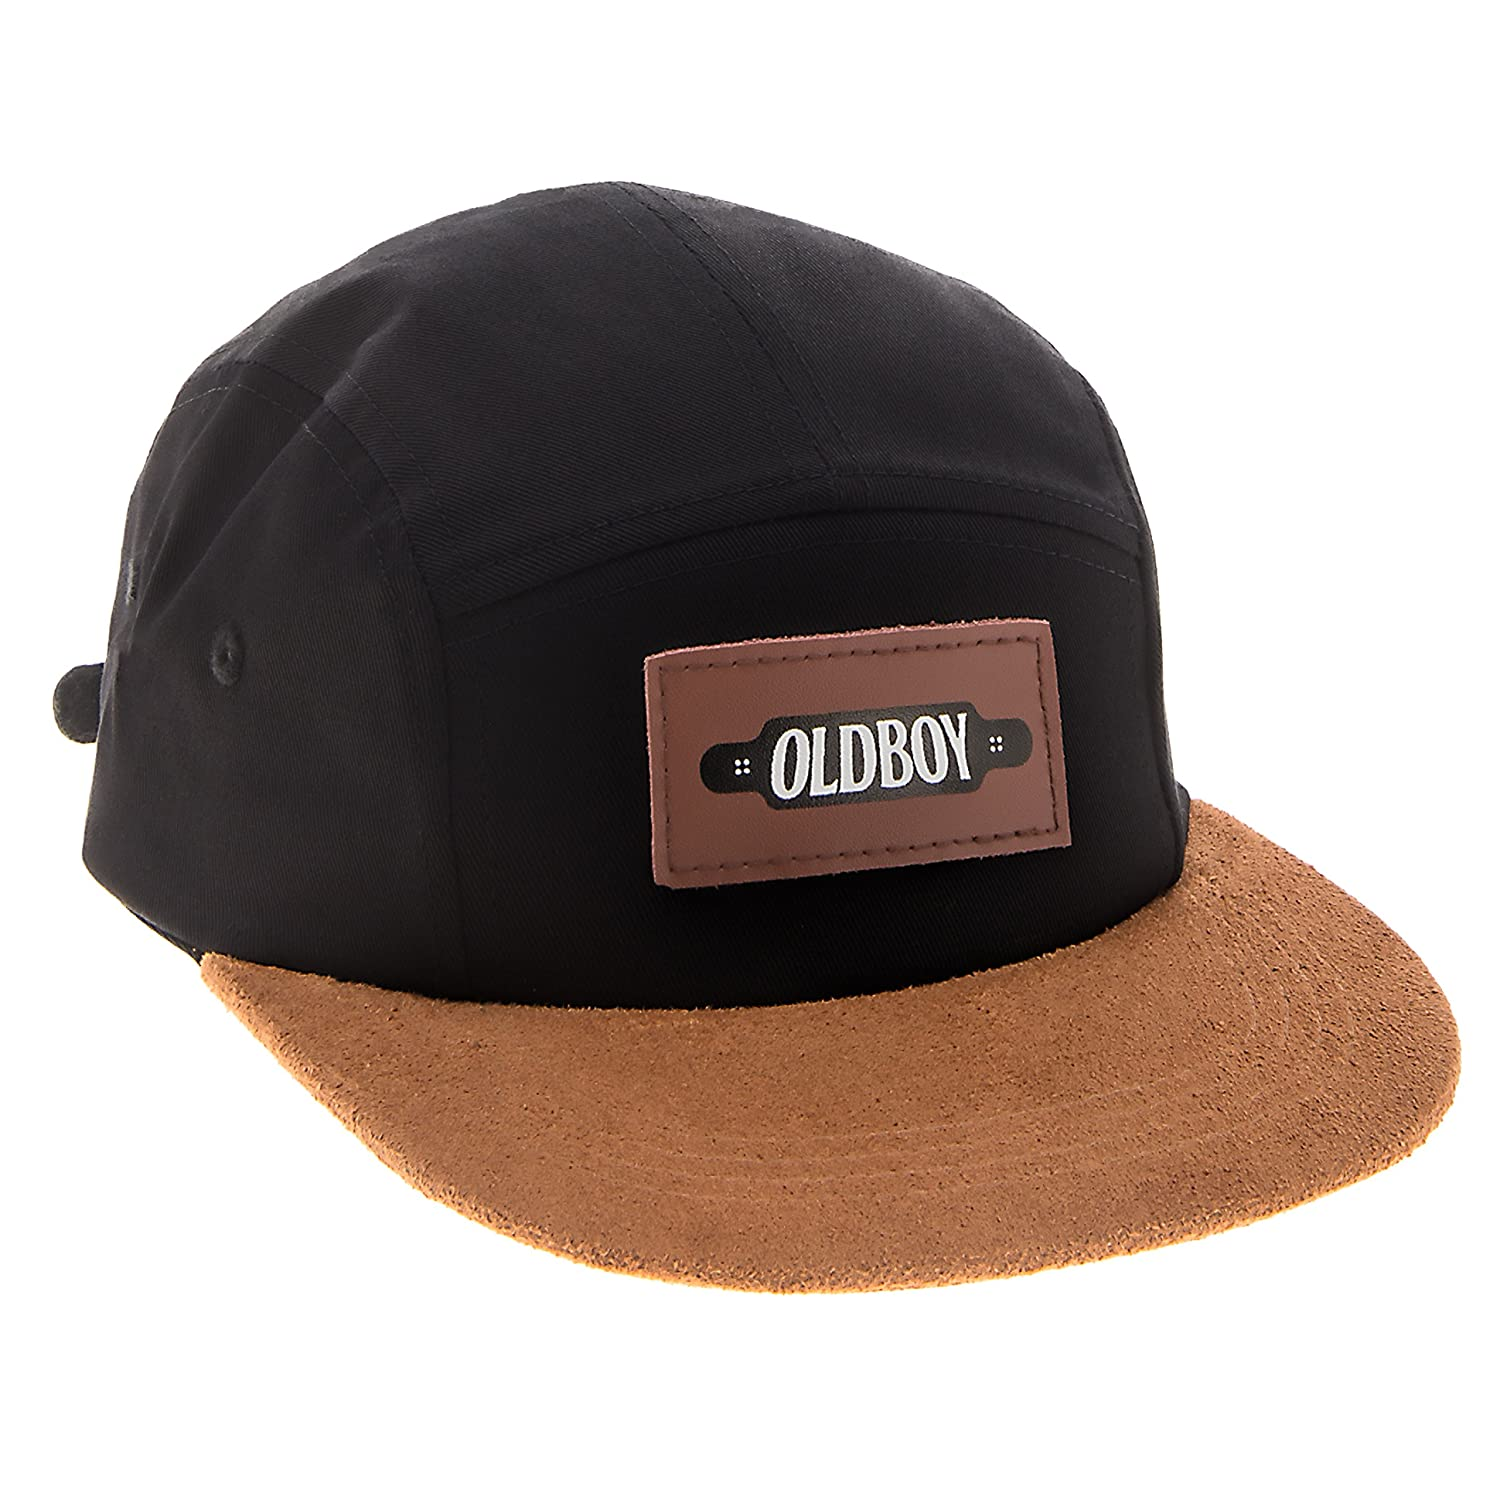 bc830272a0464 Oldboy Five Panel Cotton Flat Bill Hat for Skaters and Longboarders Black  at Amazon Men s Clothing store